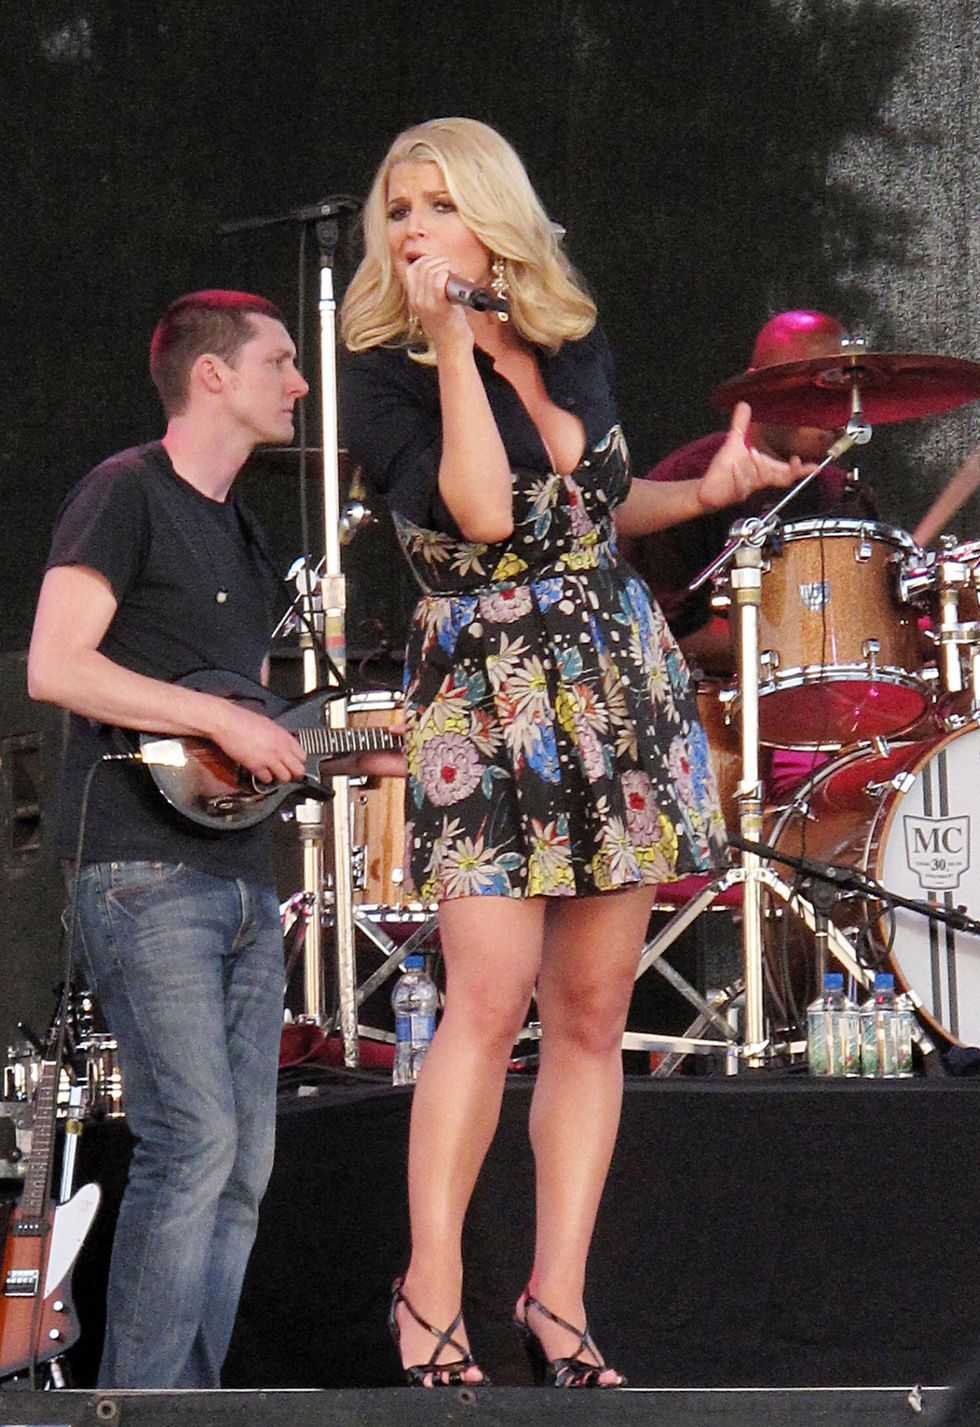 jessica-simpson-performs-live-at-the-dixon-may-fair-and-carnival-01